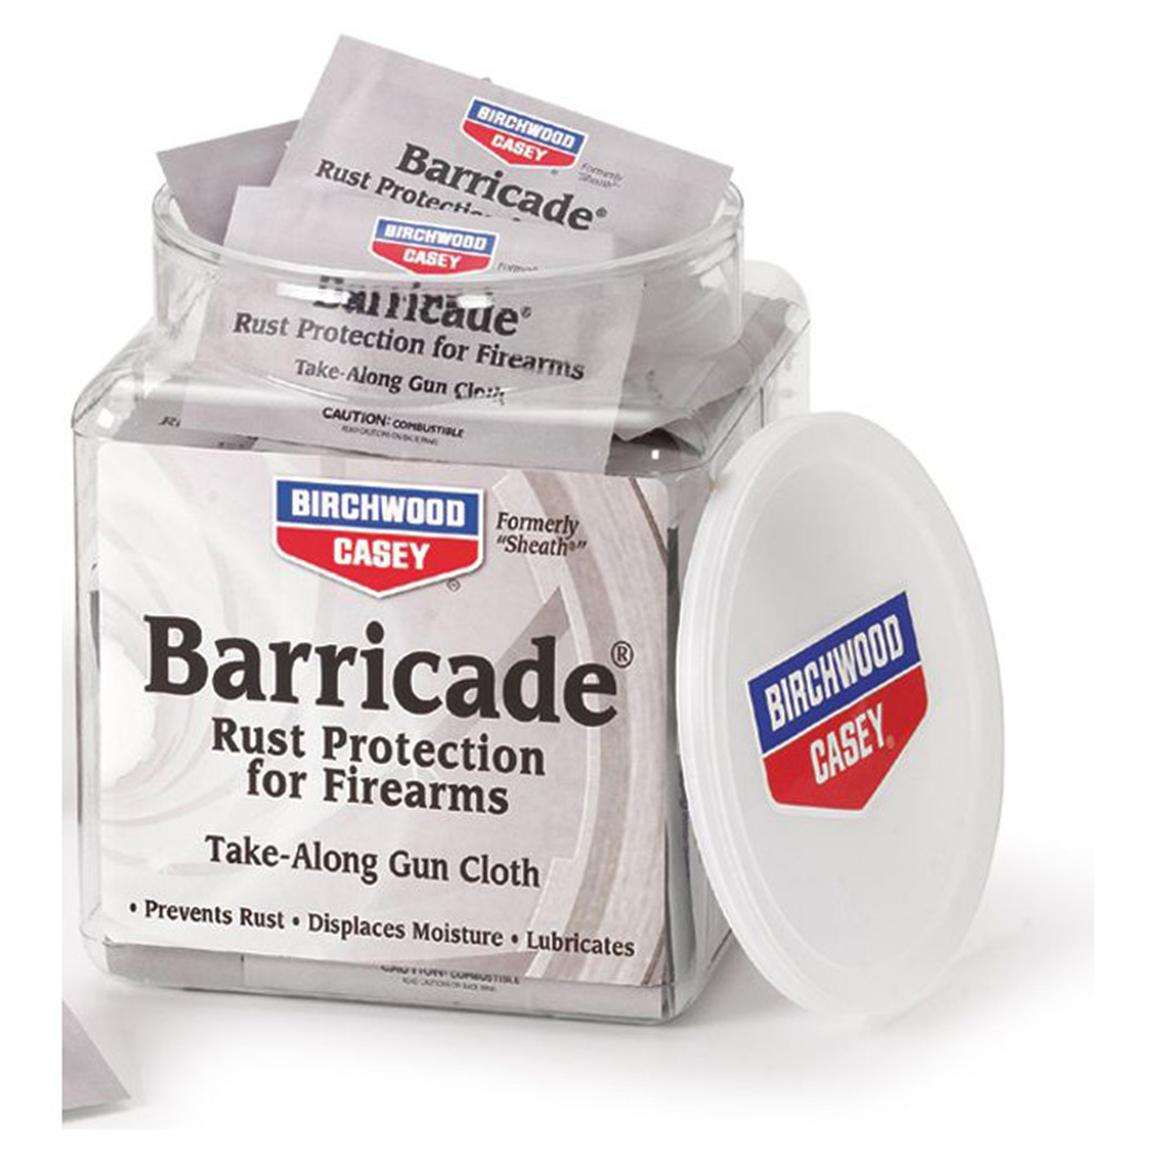 Birchwood Casey® Barricade® Rust Protection for Firearms, Take-Along Cloths